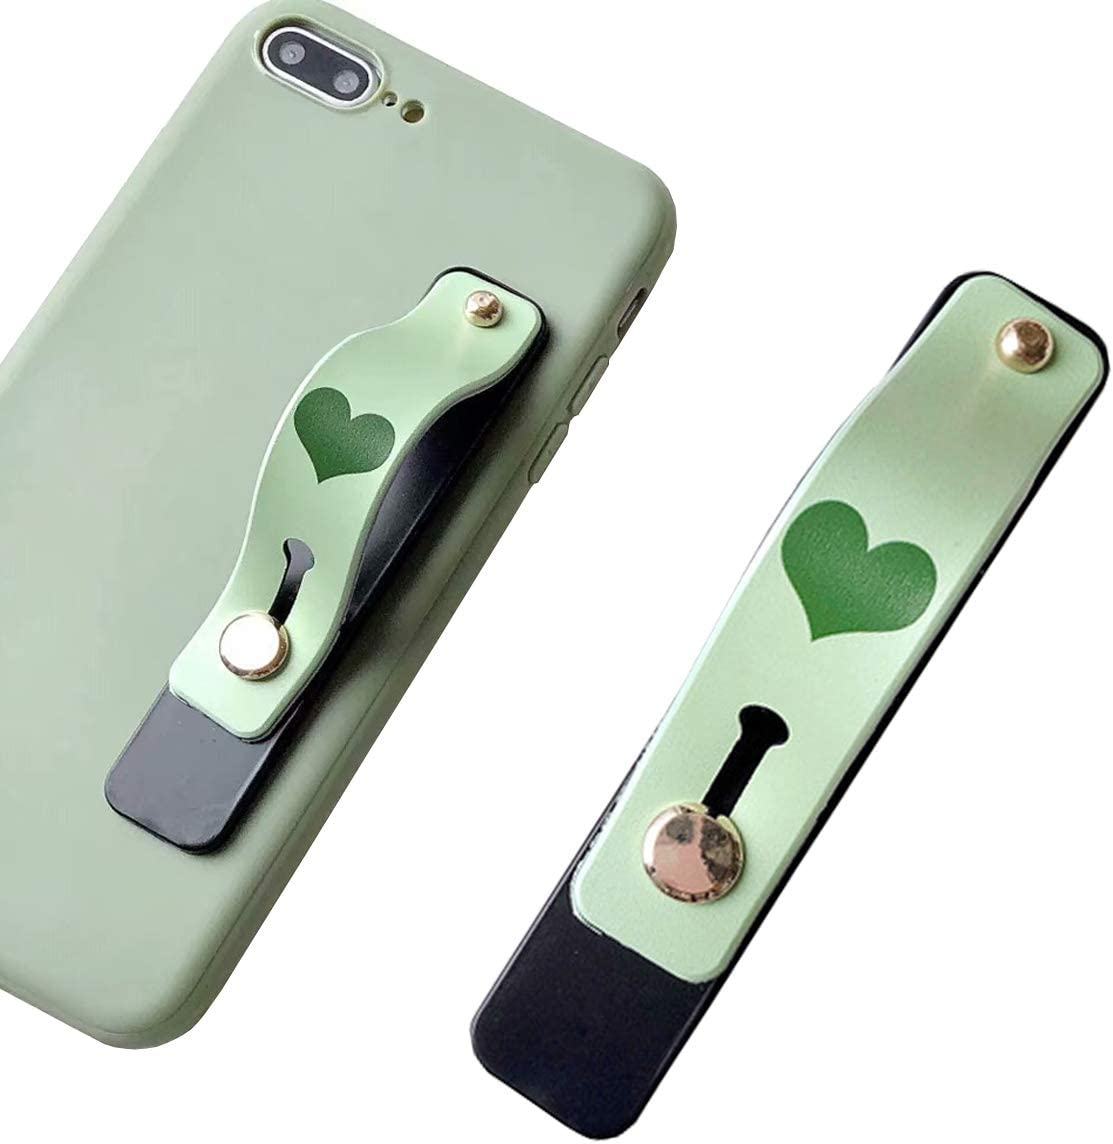 Phone Holder with PU Leather Phone Stand Green Cell Phone Grip Stand FourPlusOne Secure Phone Finger Strap Bracket for iPhone and Android